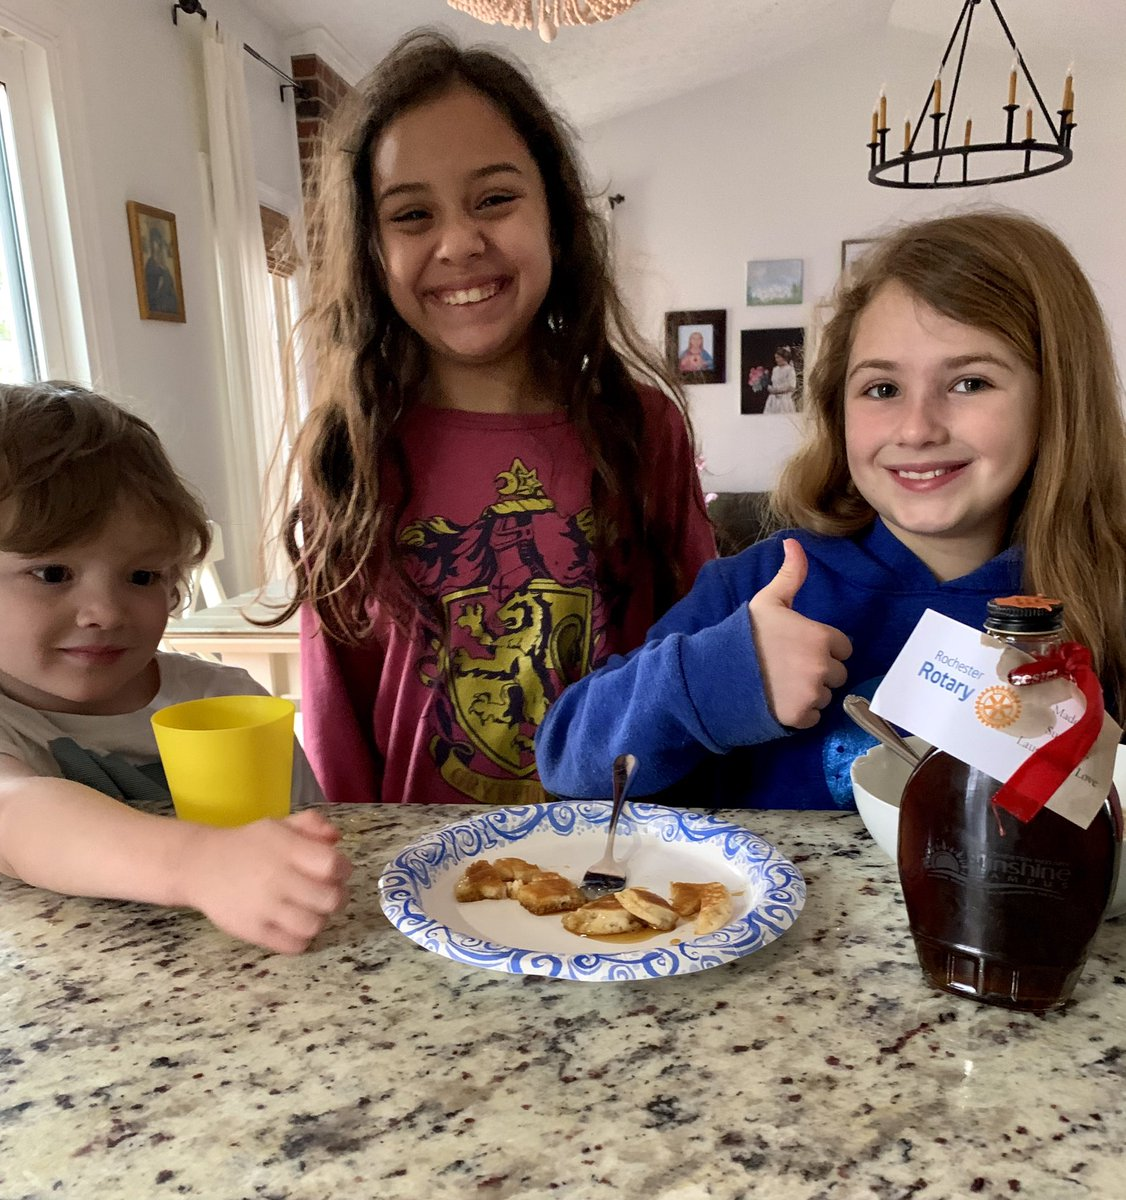 The kids had a special addition to their mini pancakes this morning thanks to our friends at @RochesterRotary. The Camp Sunshine pure maple syrup was delicious! Thanks @peterglennon and all the Rotarians!